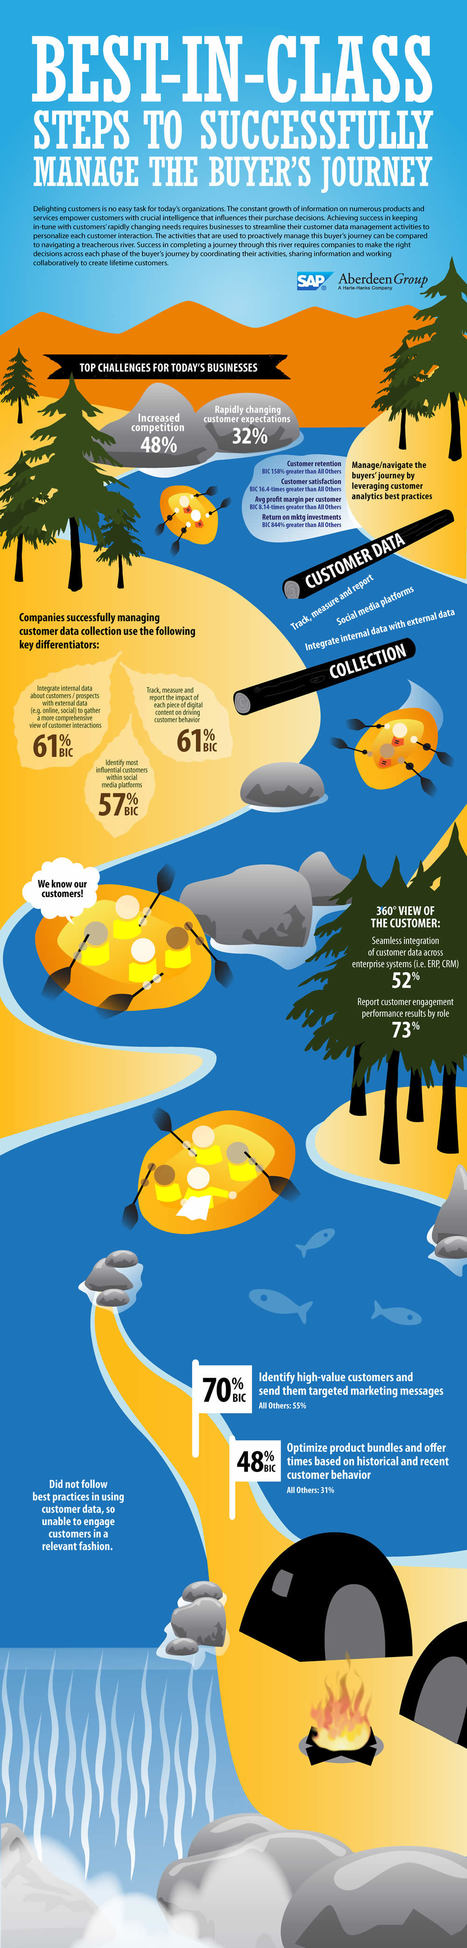 Navigating The Buyer's Journey #Infographic | TheBIWall | Scoop.it